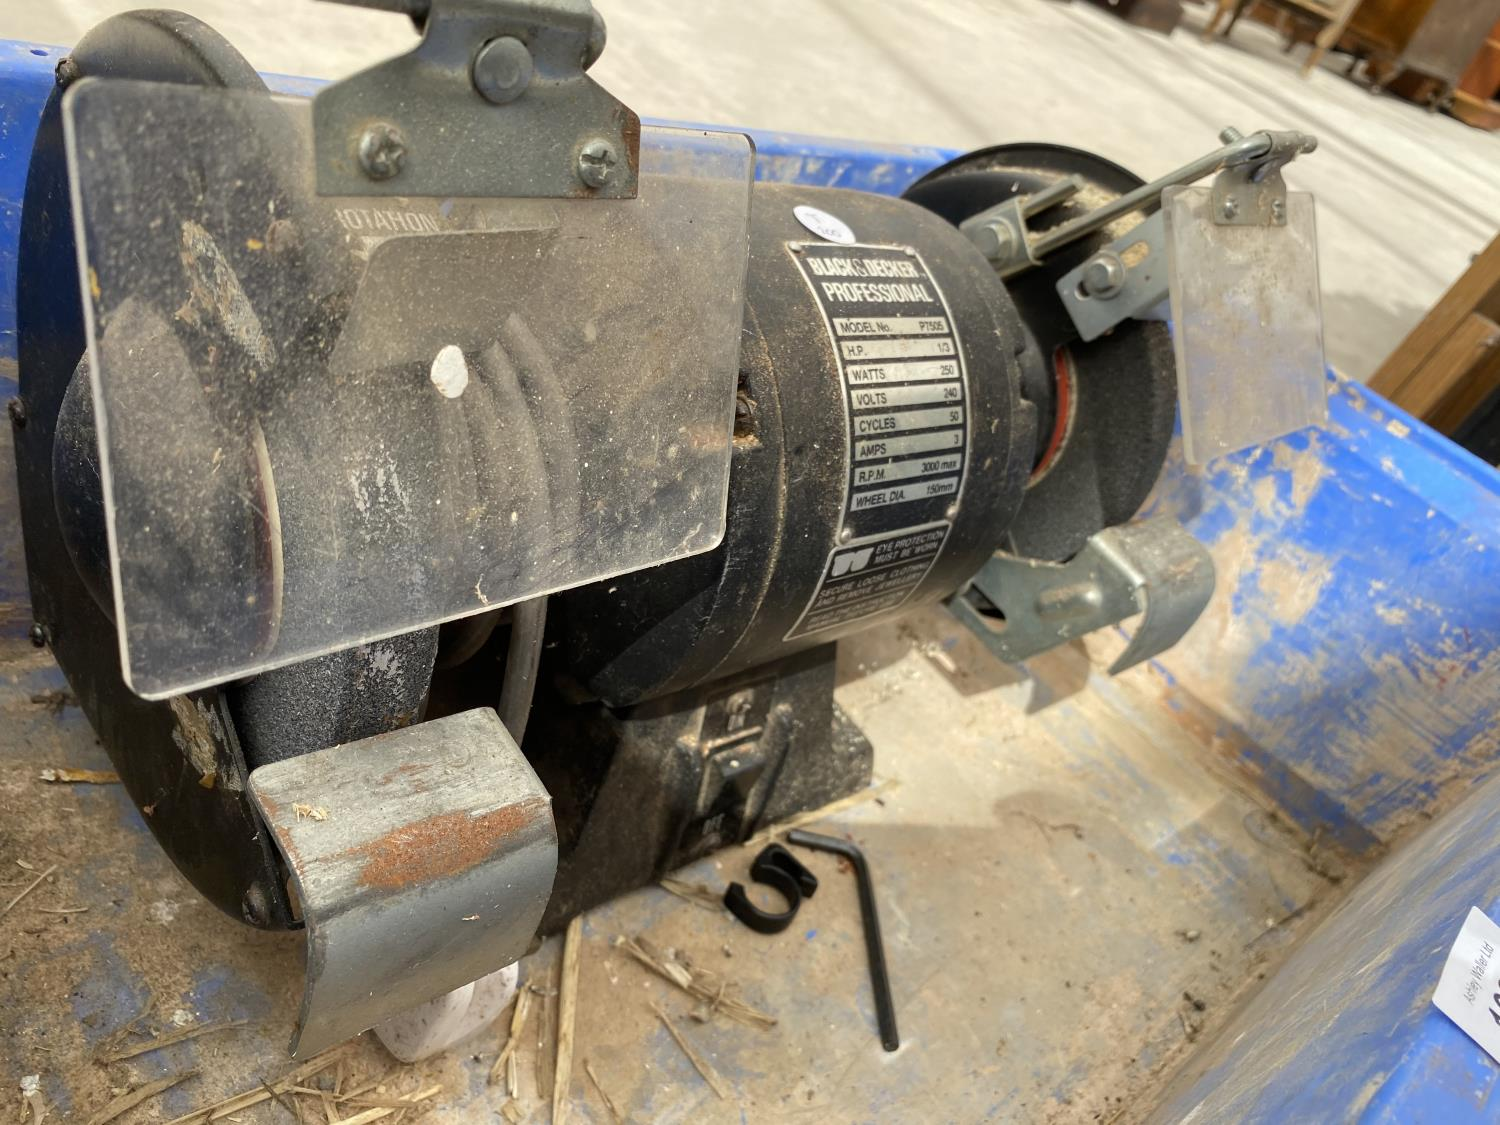 A BLACK AND DECKER WORK BENCH GRINDER AND A PULLEY - Image 4 of 4